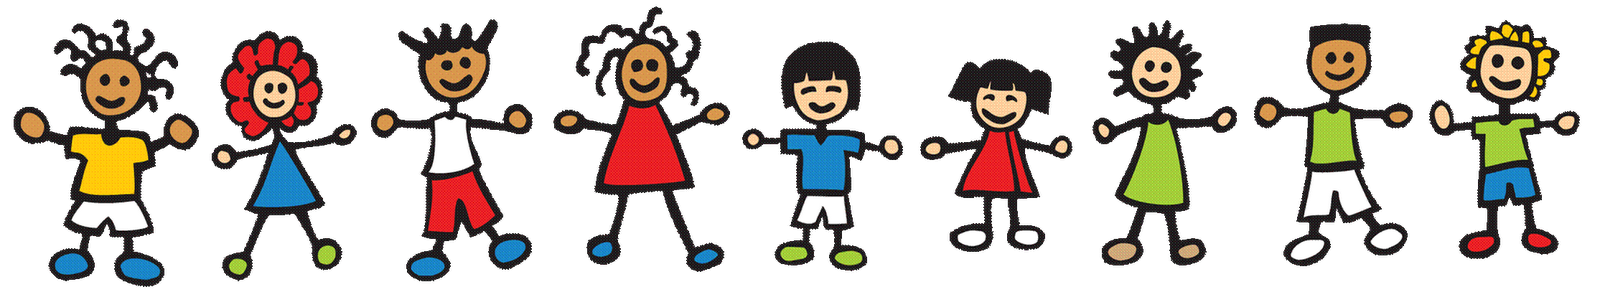 Middle clipart middle school friend. Free friends pictures download